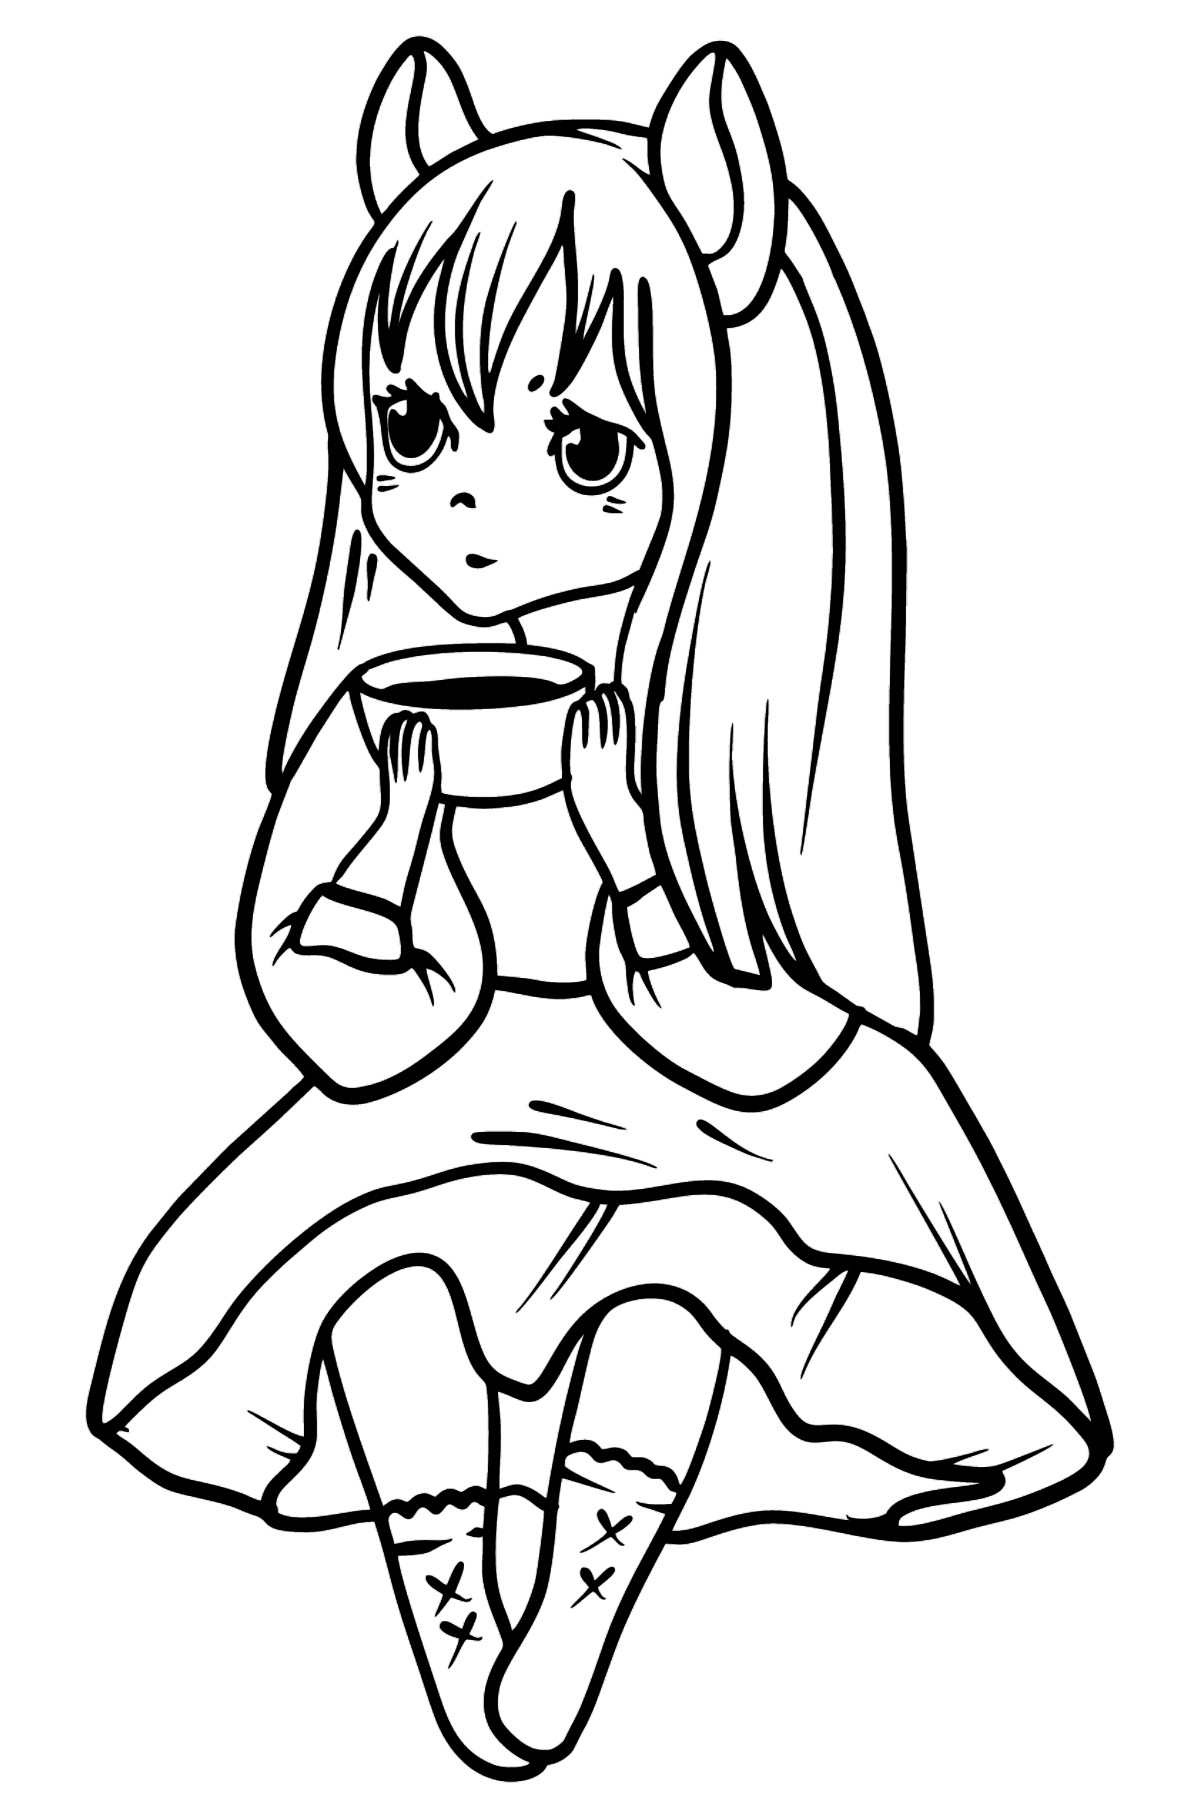 Anime Girl Drinking Coffee coloring page - Coloring Pages for Kids